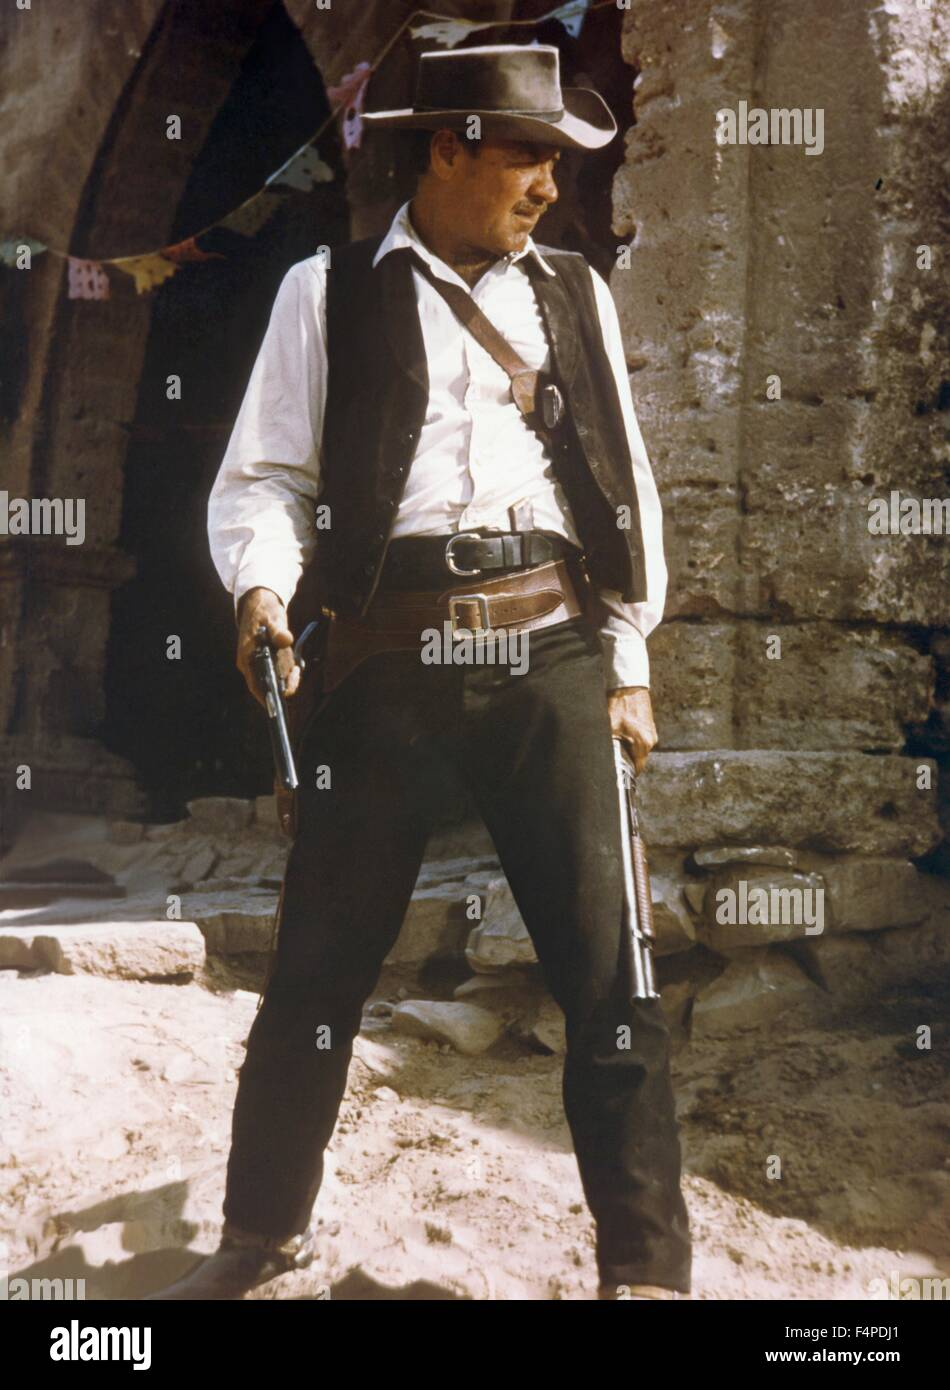 William Holden / il Wild Bunch 1969 diretto da Sam Peckinpah Immagini Stock